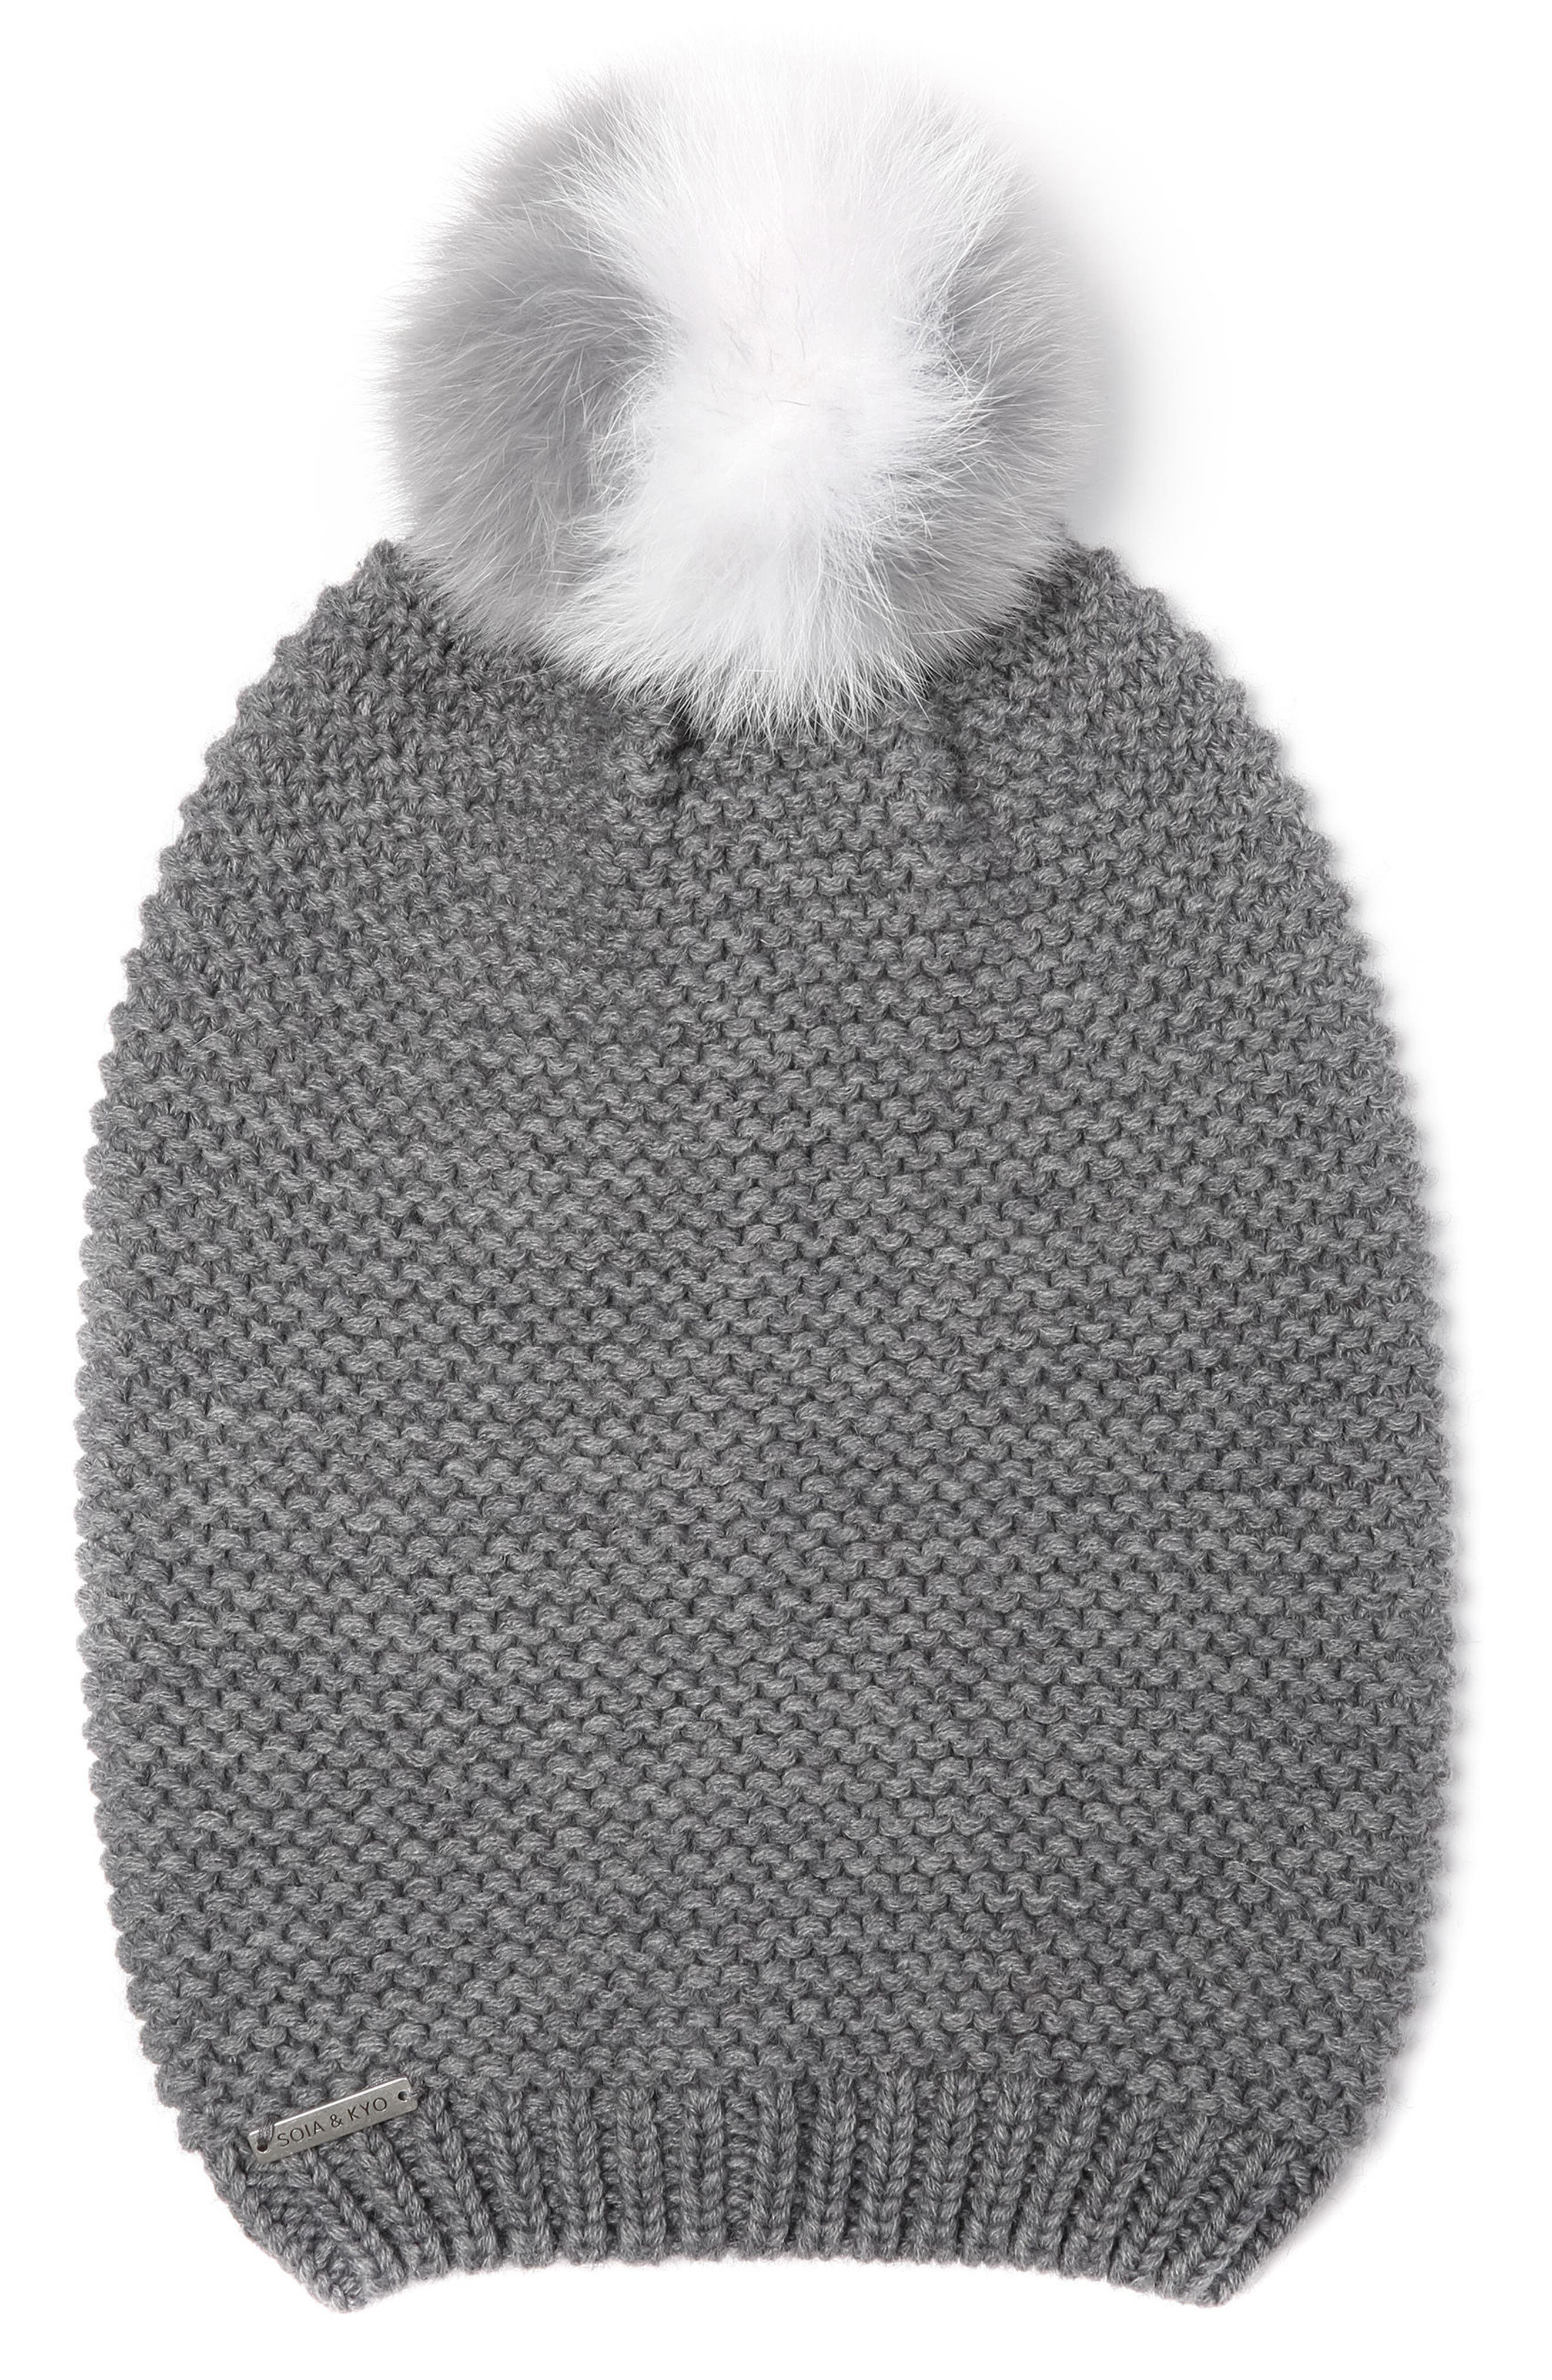 Slouchy Knit Beanie with Genuine Fox Fur Pompom,                             Main thumbnail 1, color,